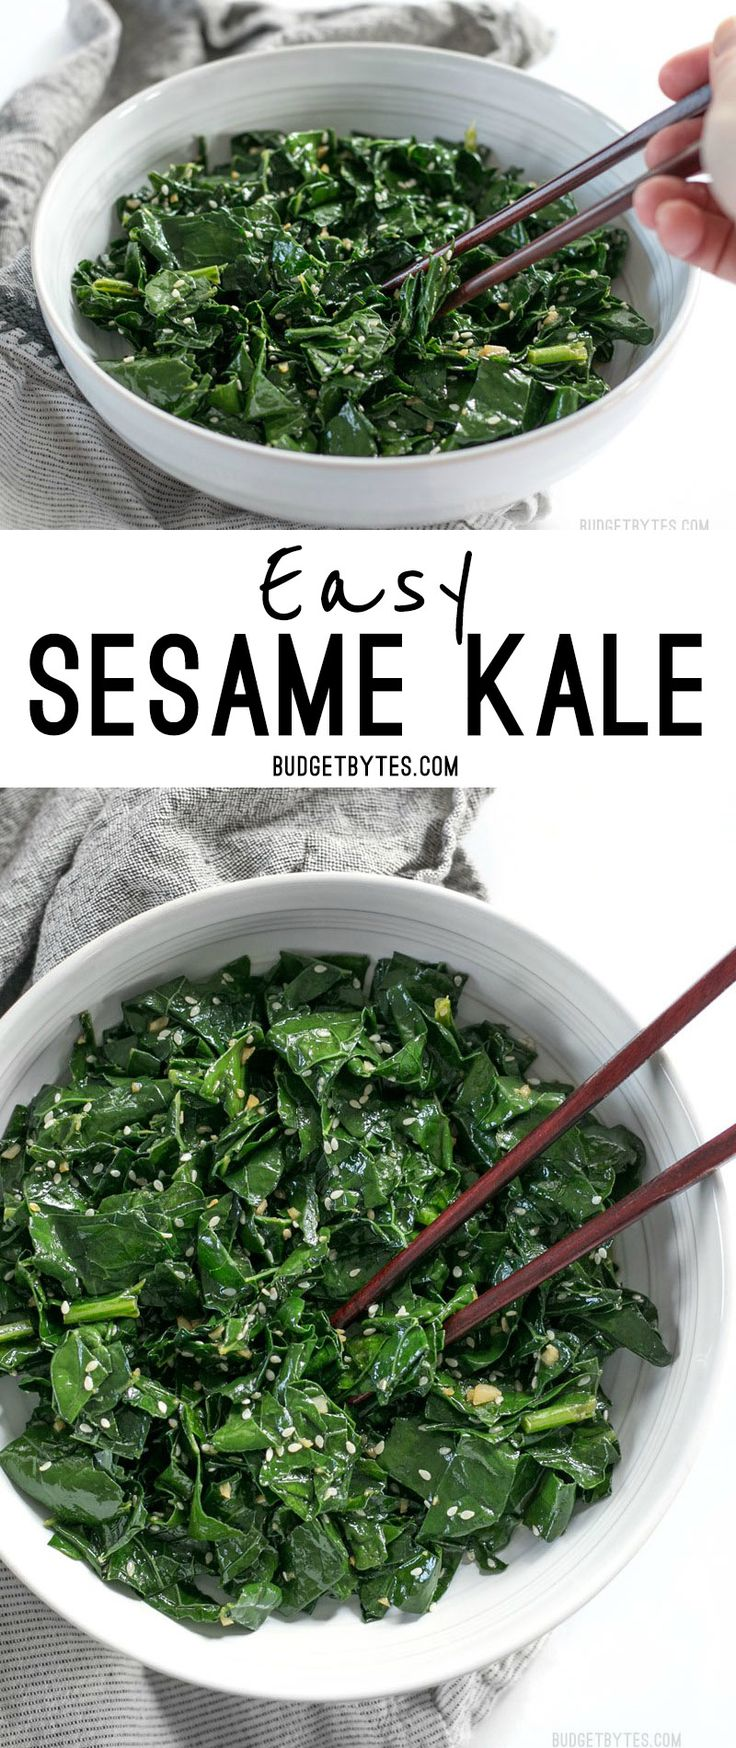 Sesame Kale is a quick and easy side dish that pairs perfectly with any Asian inspired meal. BudgetBytes.com